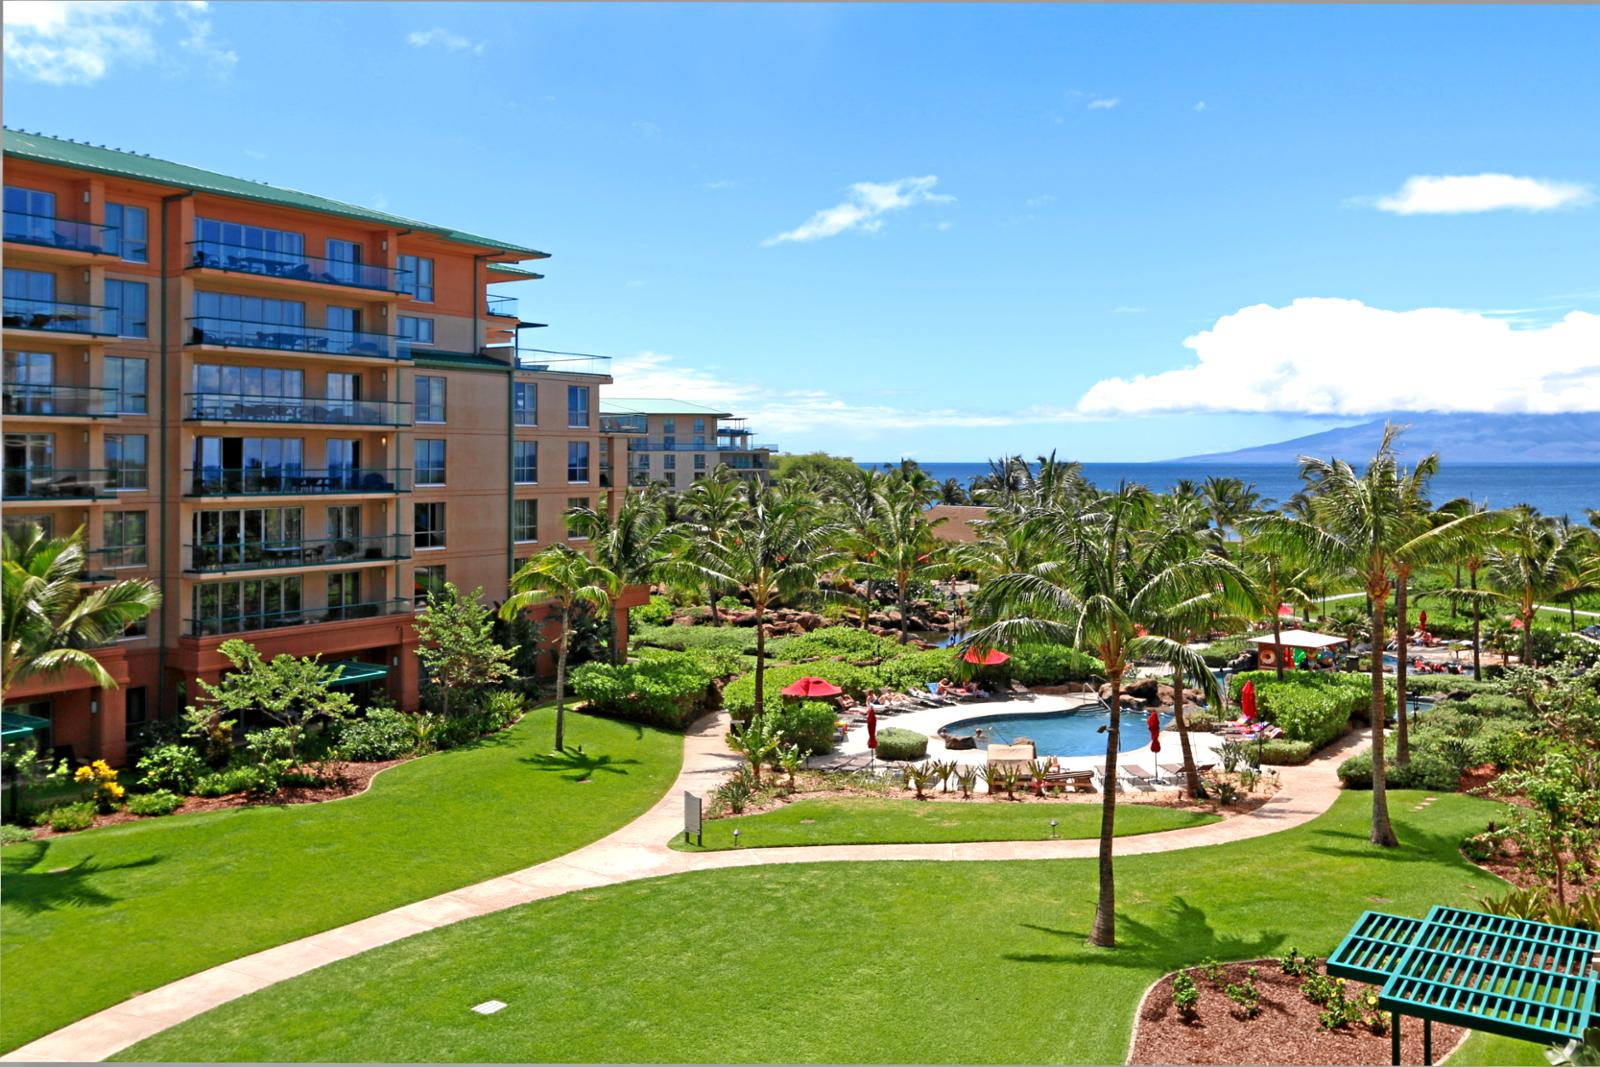 Great views of the ocean, pools and island of Lanai.